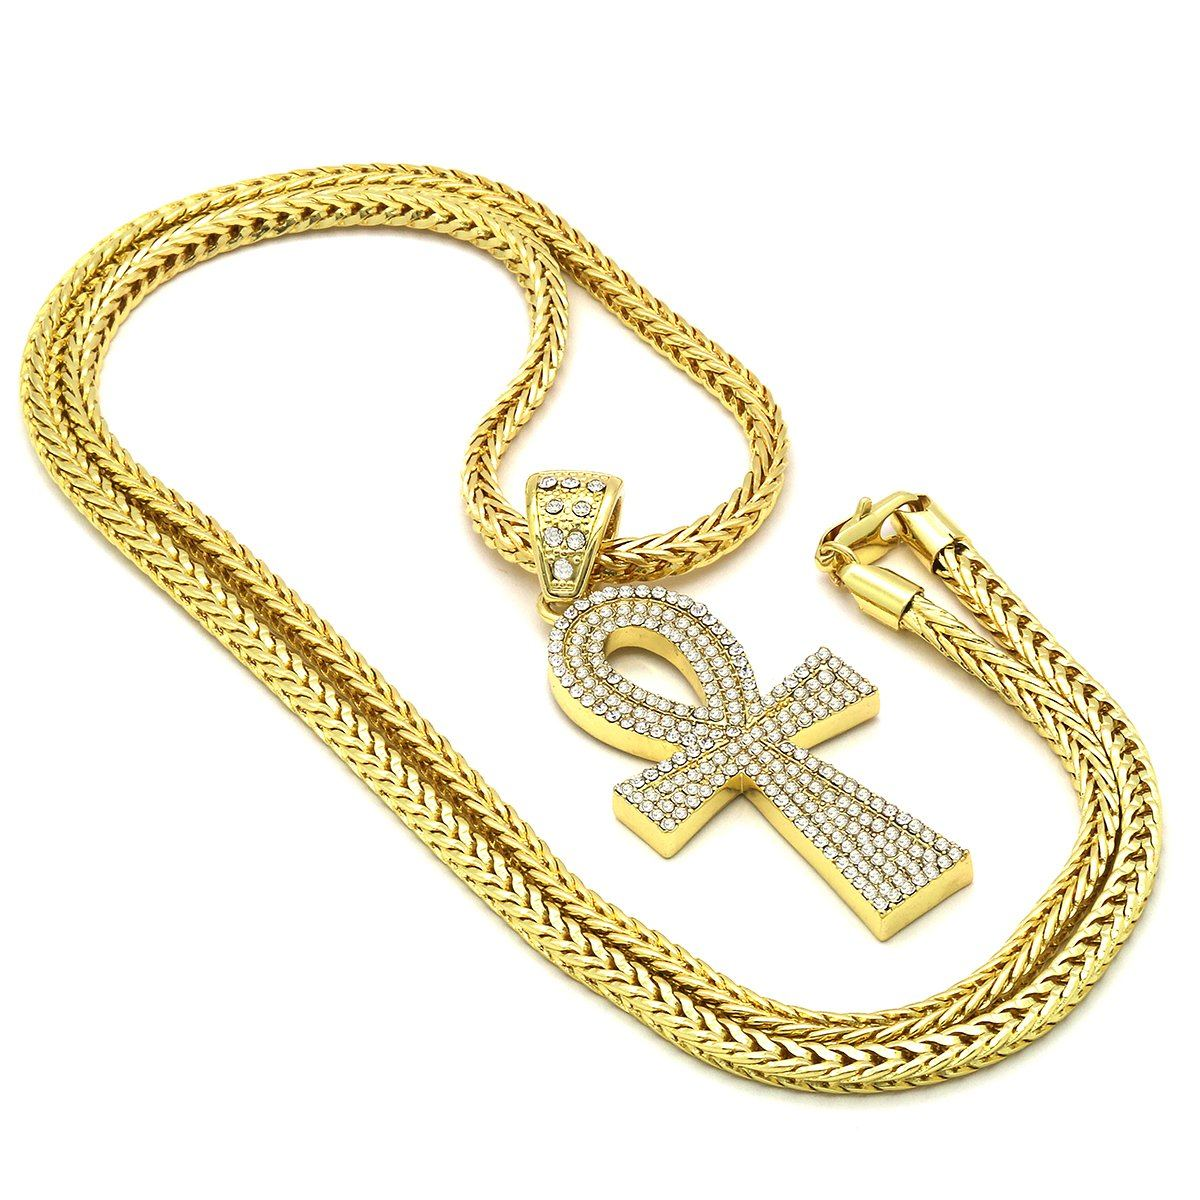 14k Gold Filled Ankh Cross Pendant with Franco Chain